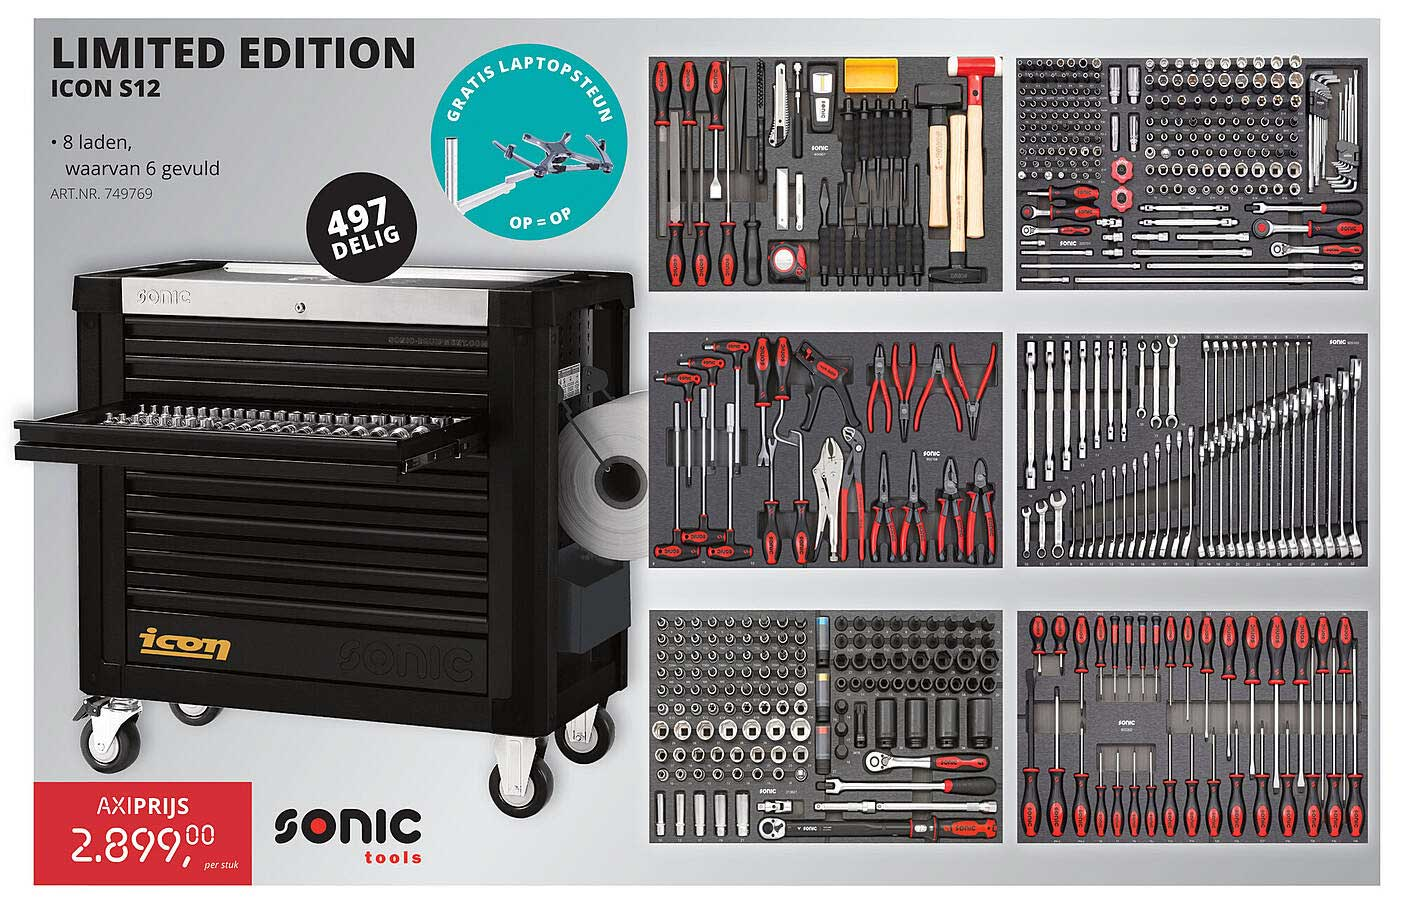 Toolspecial Limited Edition Icon S12 Sonic Tools